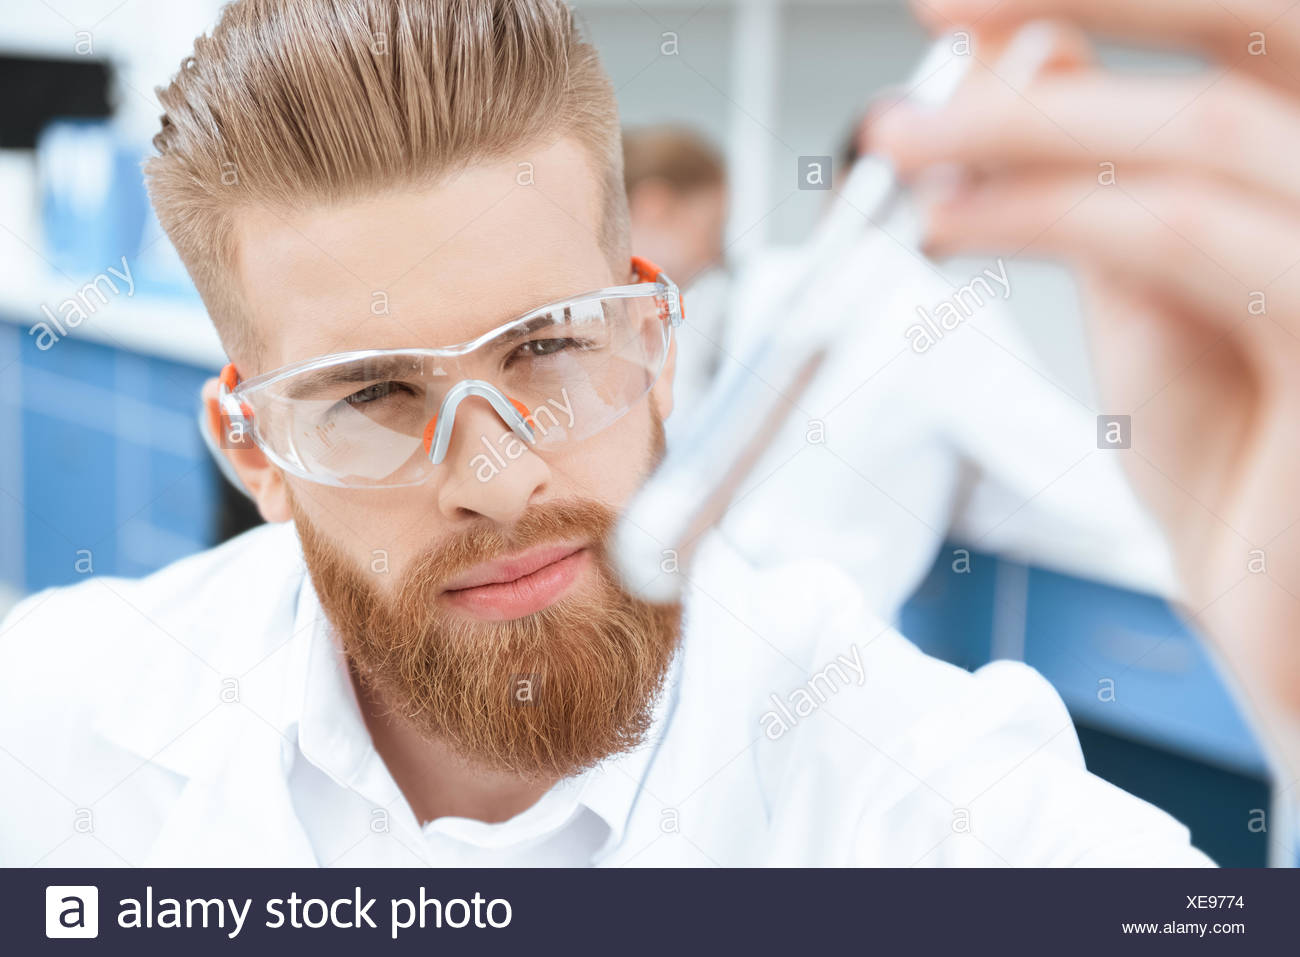 Close-up view of bearded chemist in protective goggles inspecting test tube in lab - Stock Image